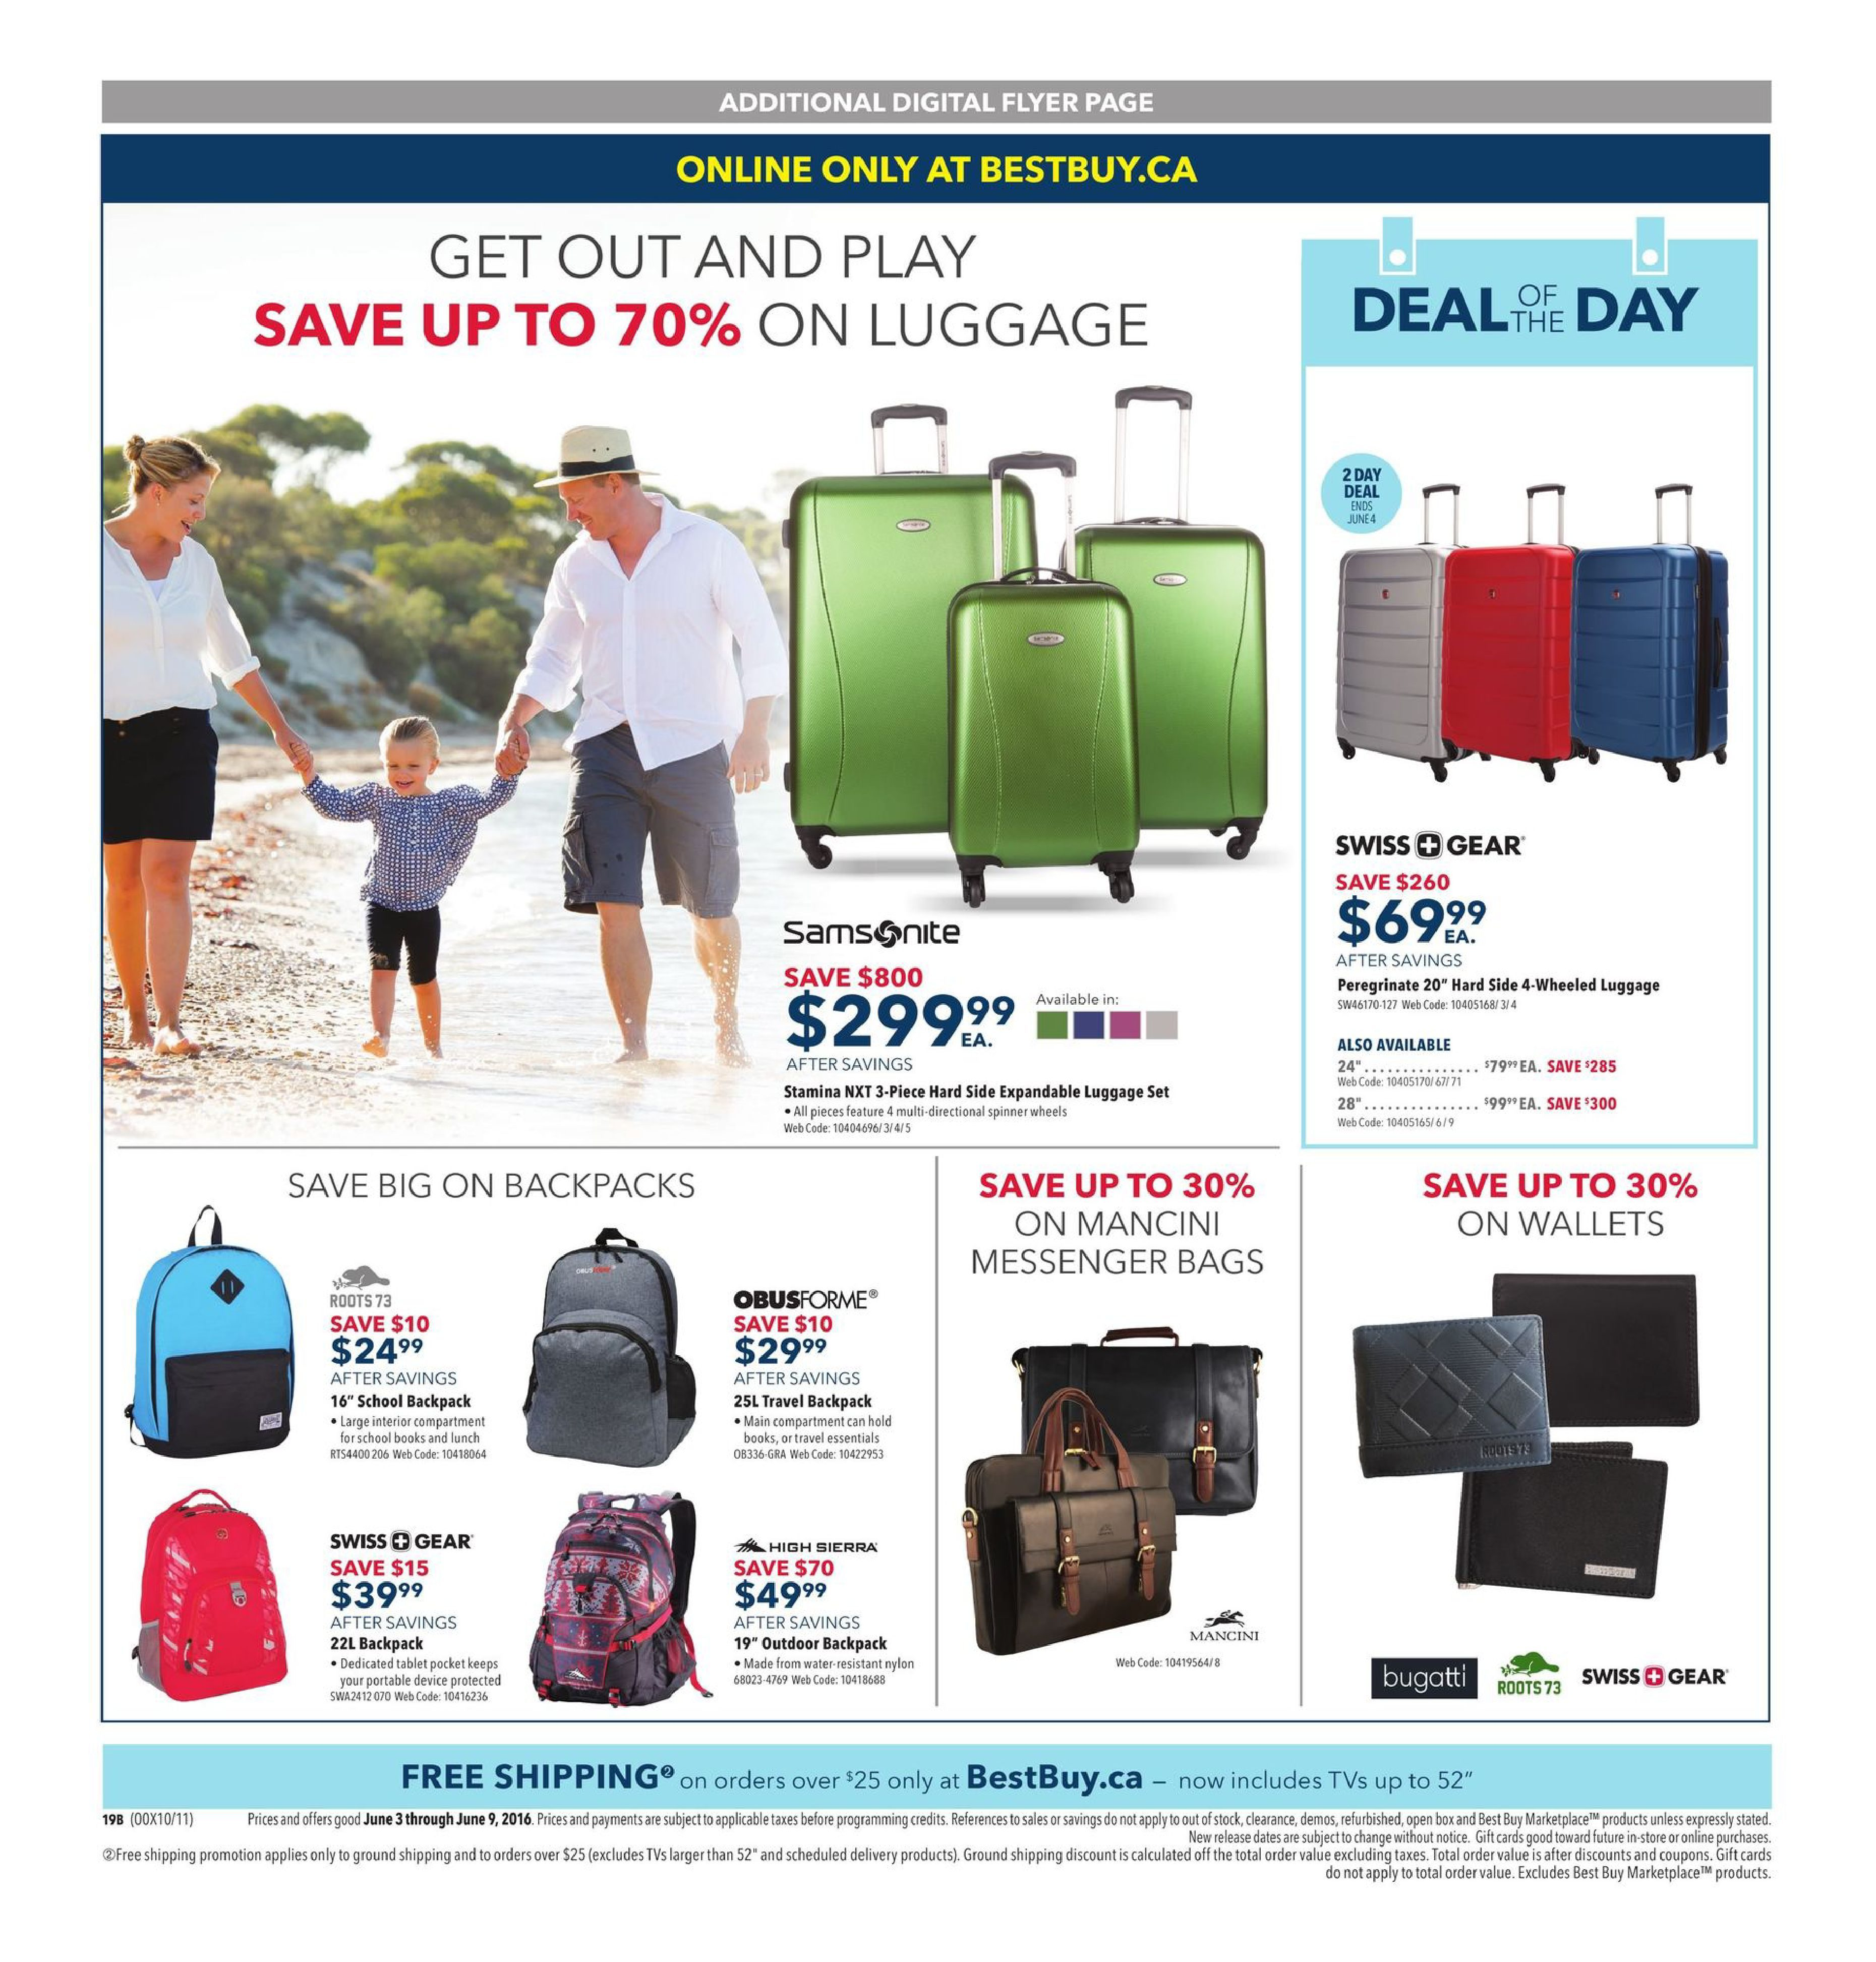 Best buy weekly flyer weekly gifts made memorable jun 3 9 best buy weekly flyer weekly gifts made memorable jun 3 9 redflagdeals fandeluxe Choice Image